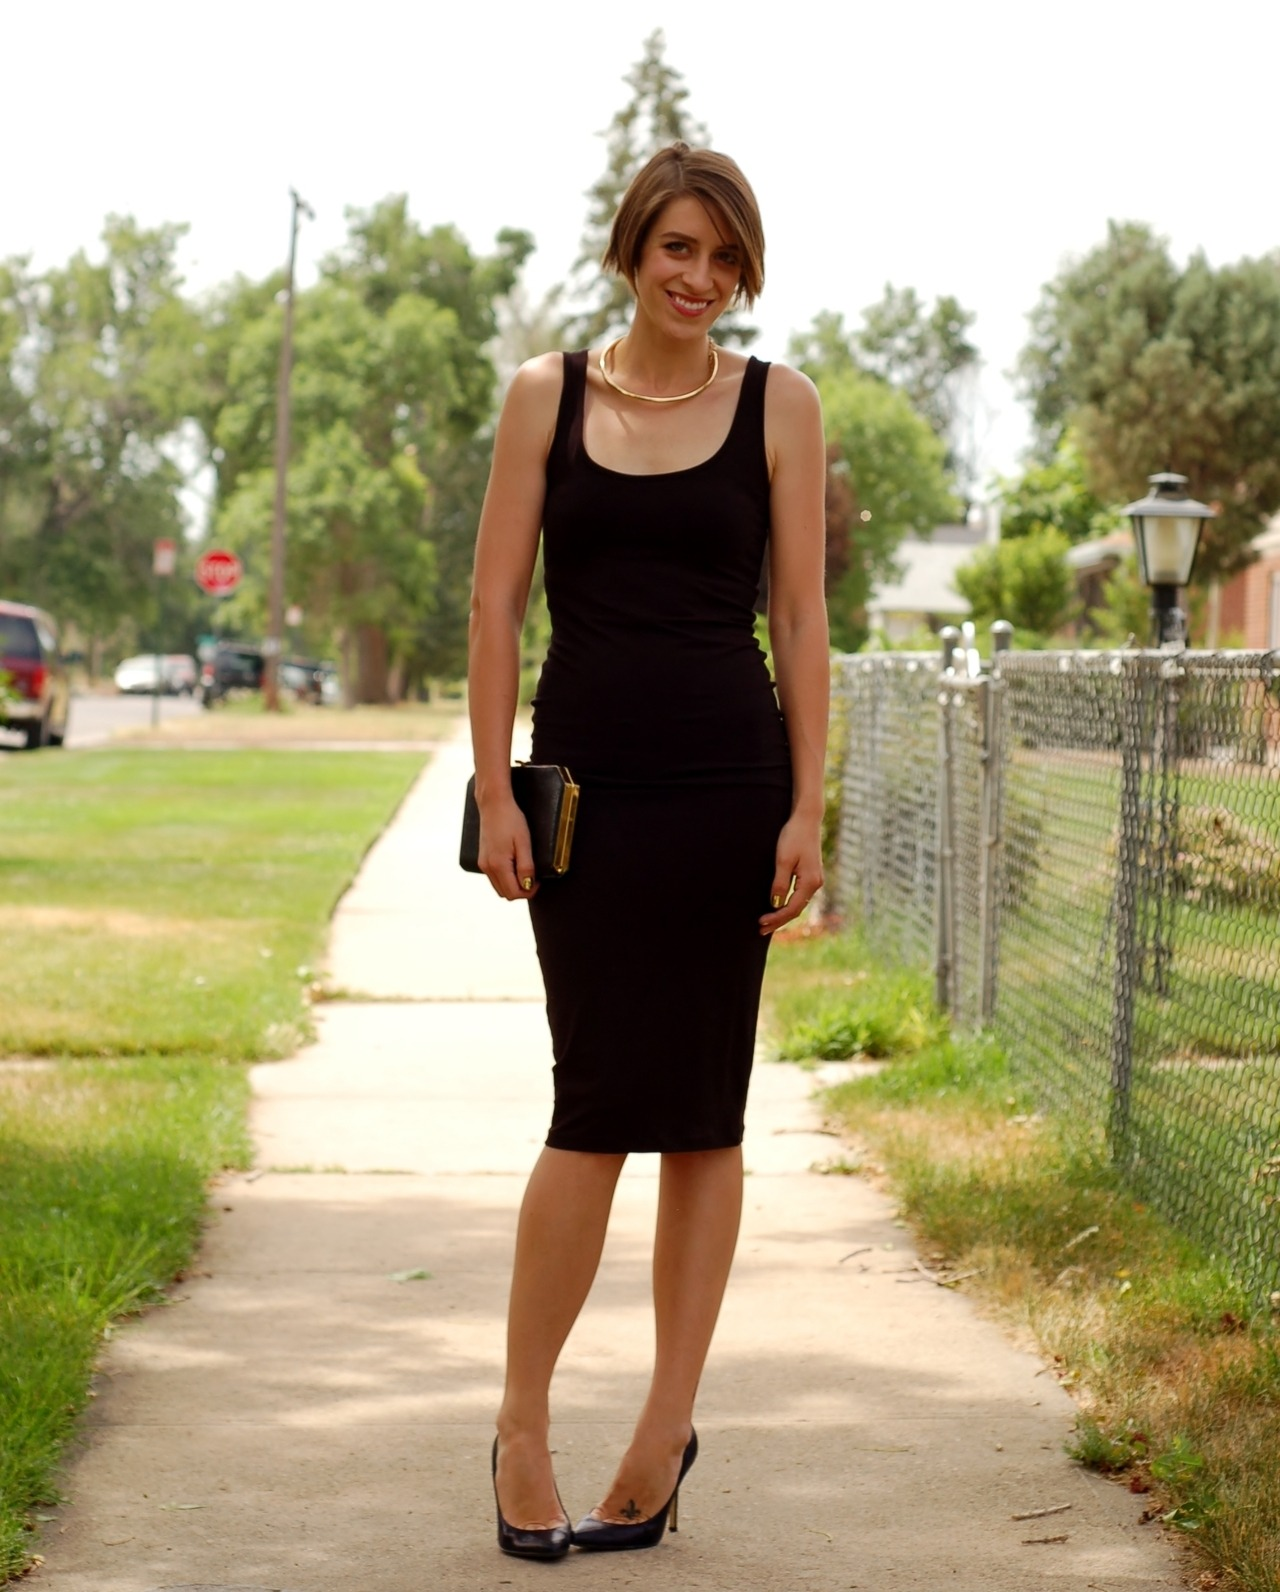 asos dress, h&m necklace, aldo heels (dyed black), vintage clutch, nail rock nail wraps in gold